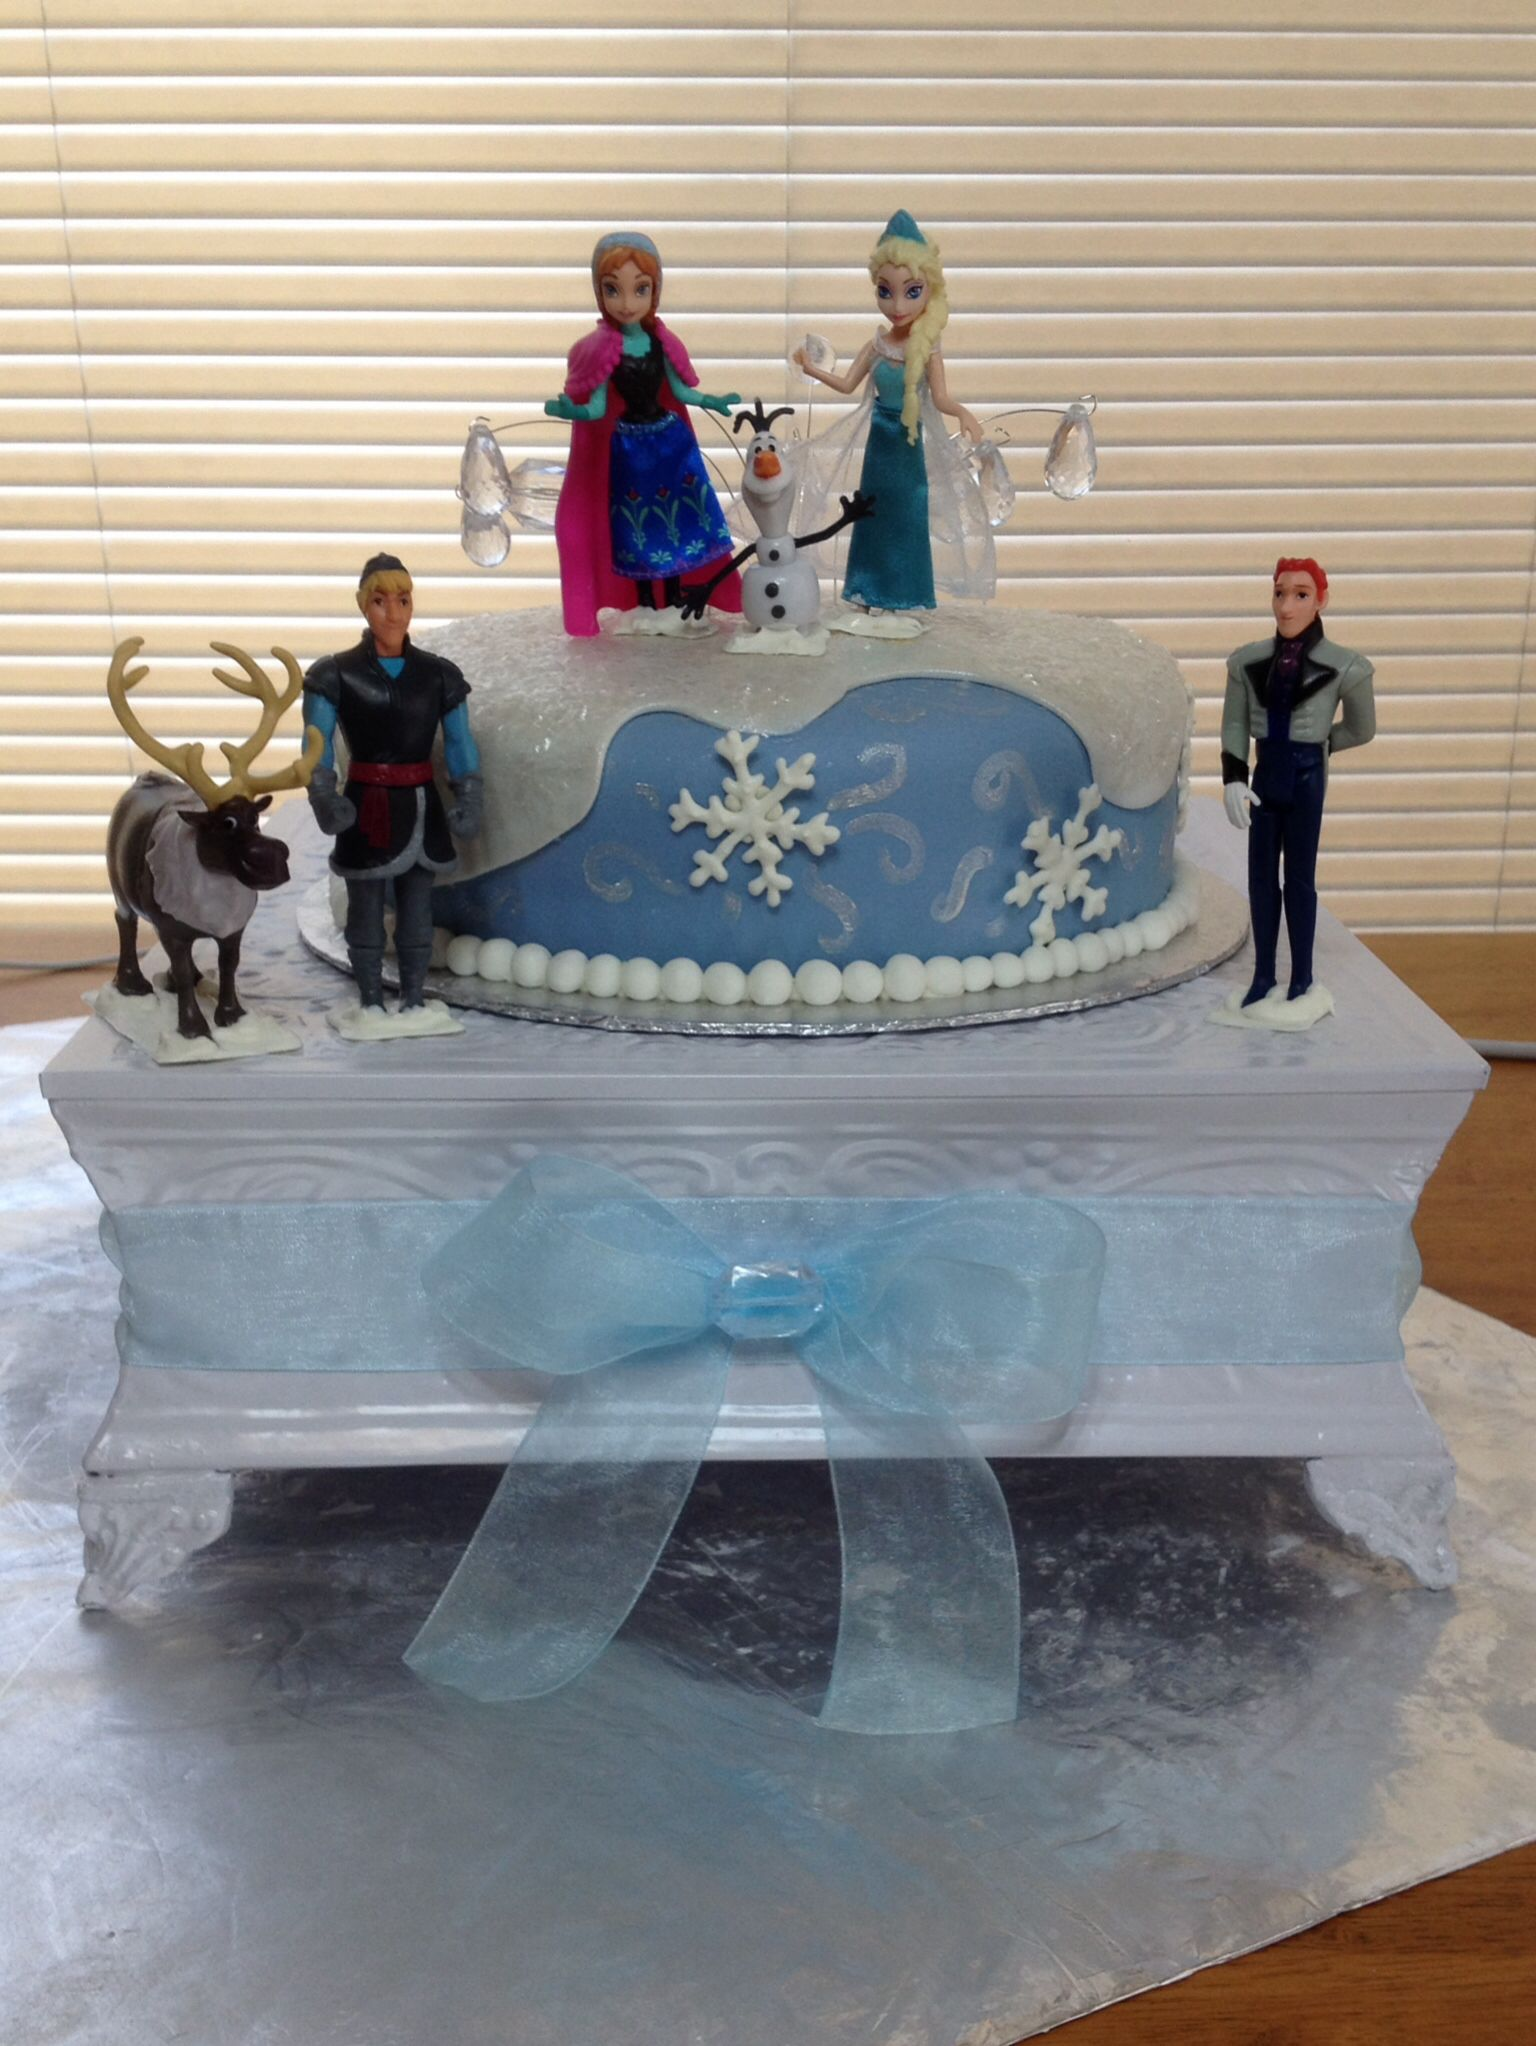 Frozen themed birthday cake Two 9 inch cake pans covered in